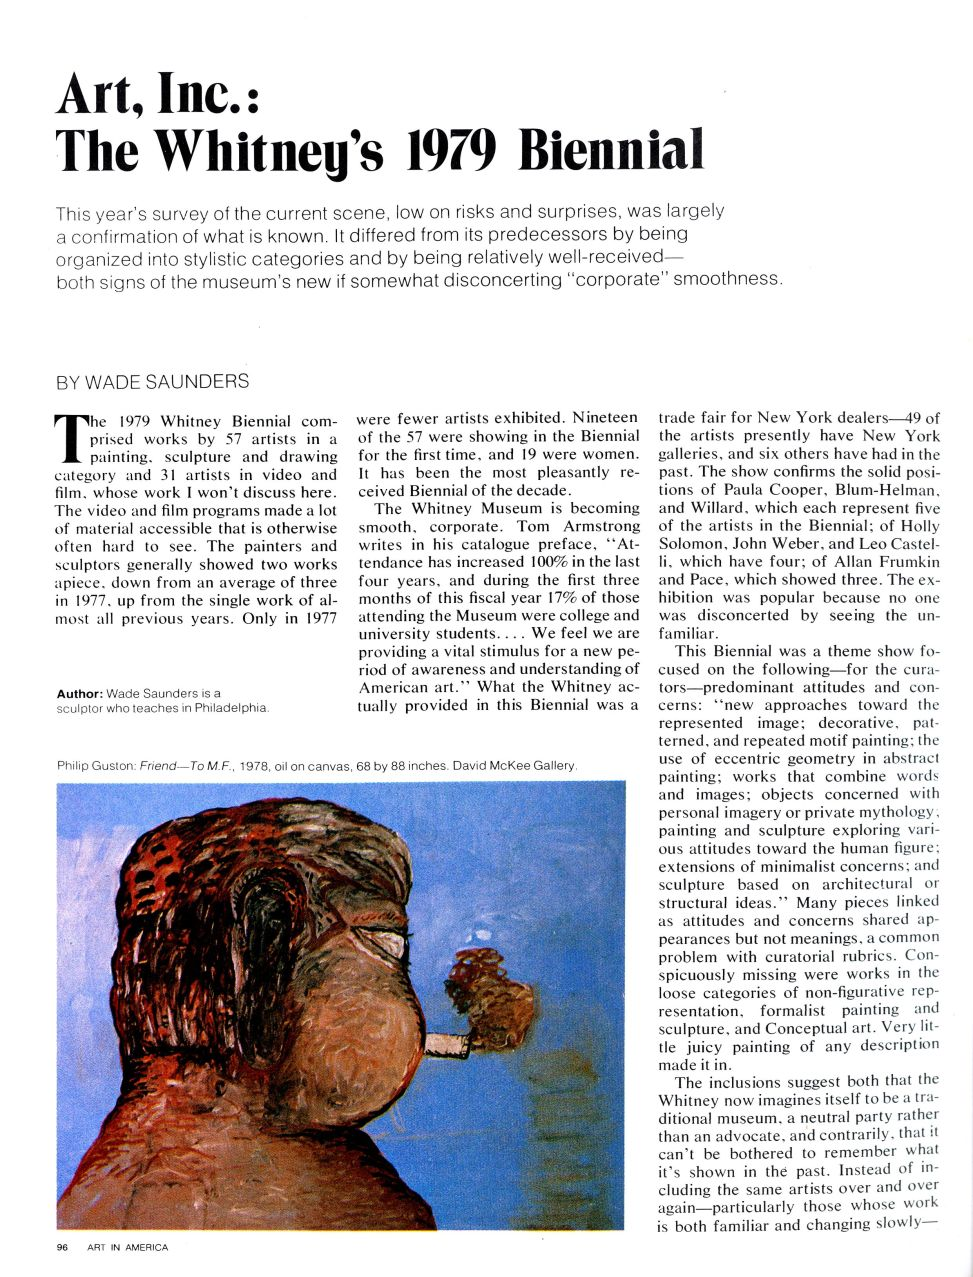 art_in_america_1979_whitney_biennial_page96